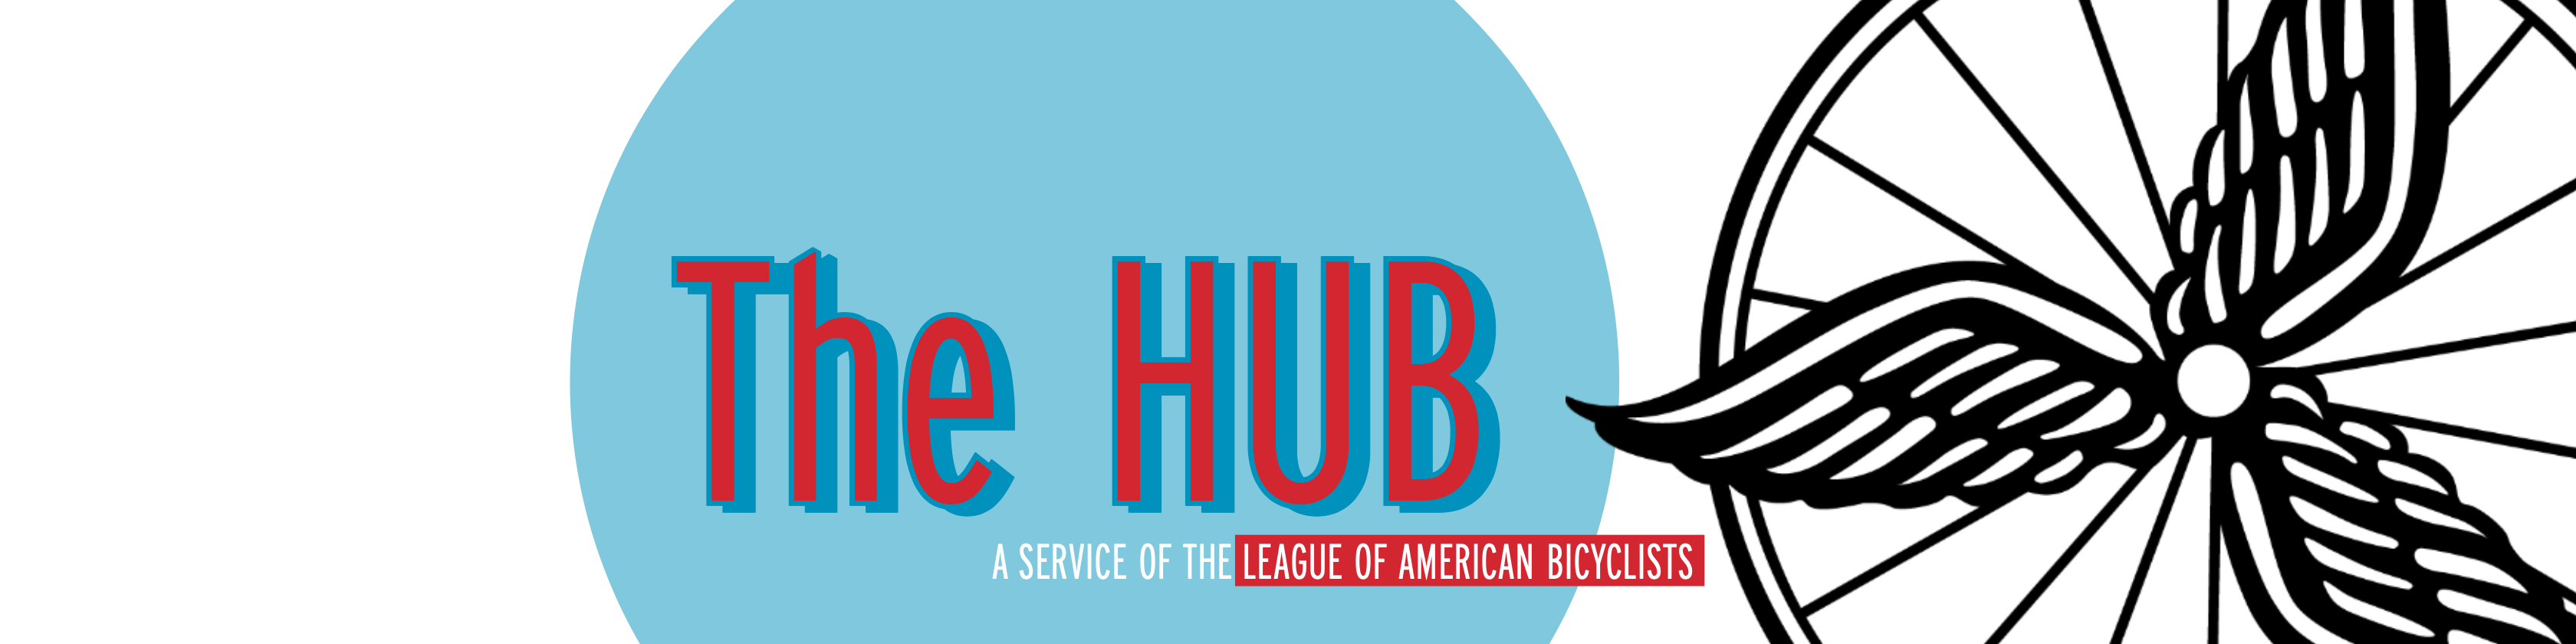 Bike League Hub